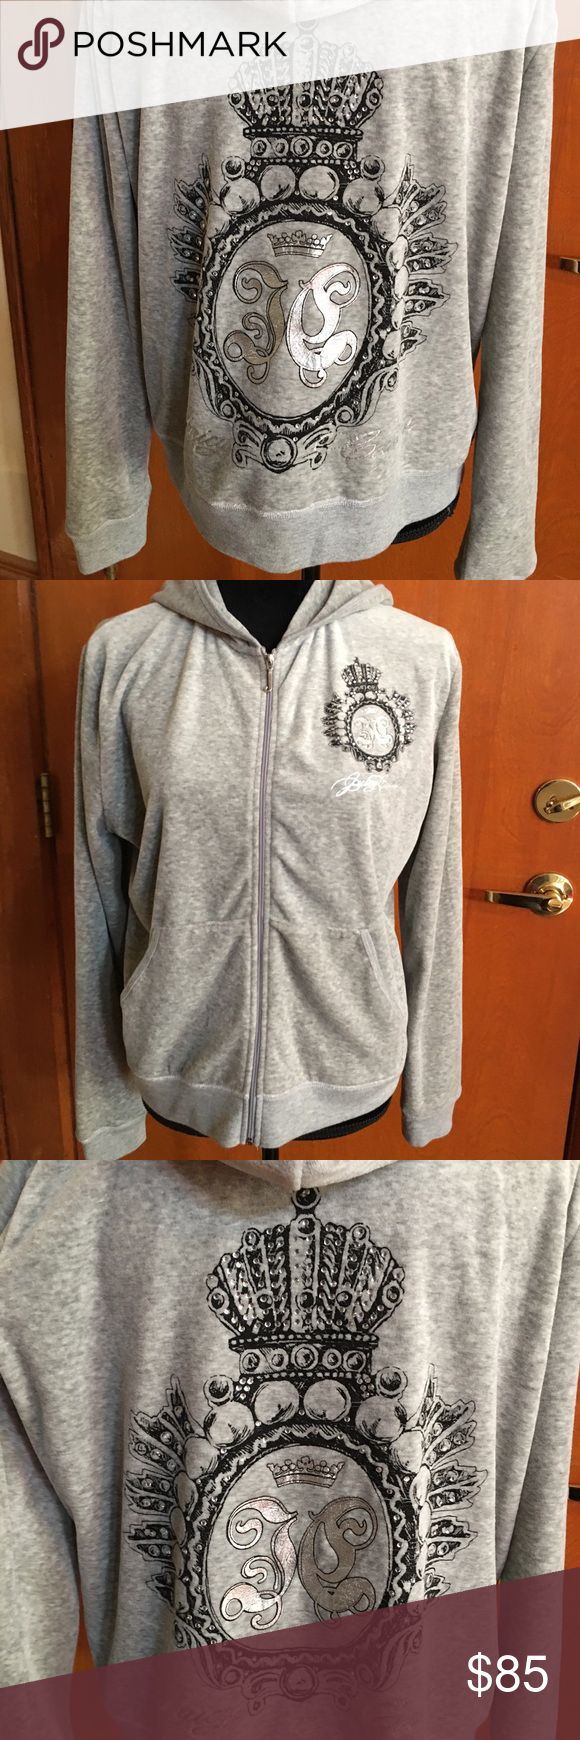 Juicy Couture Gray Velour Hoodie w/ Crystals NWOT This is a brand-new juicy couture gray velour hoodie with crystal accents. Has a beautiful sparkle. This is a boutique piece purchased about 10 years ago from the juicy couture boutique in New York City. You won't find this sexy hoodie anywhere else! Ladies size extra-large. No trades please. Juicy Couture Tops Sweatshirts & Hoodies